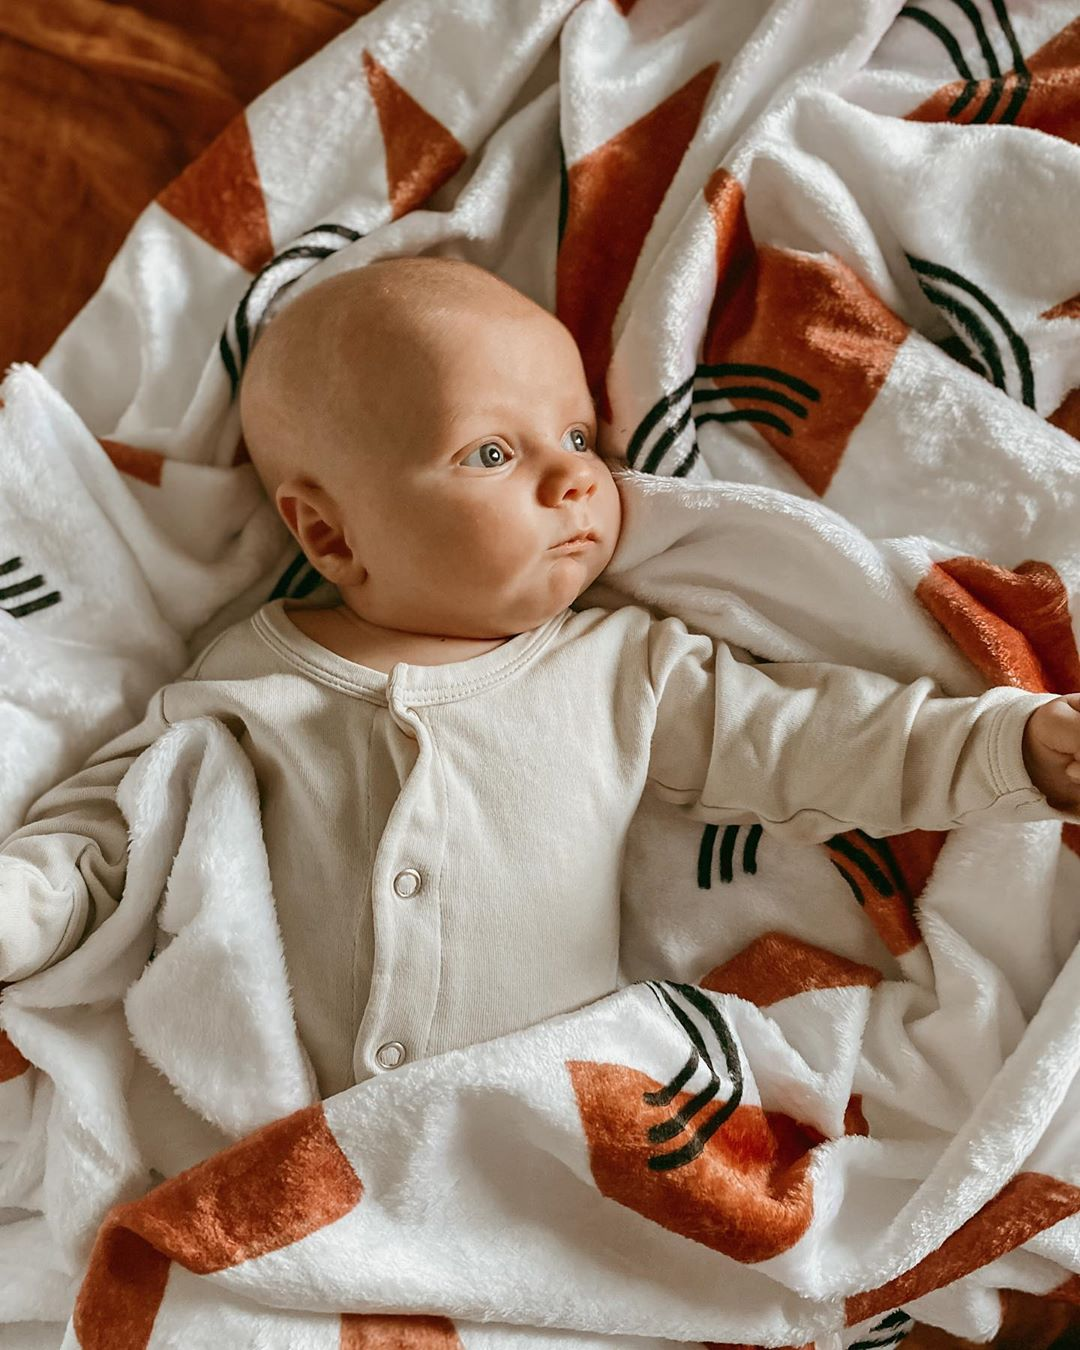 baby laying on a blanket printed with rust colored triangles and black rainbows